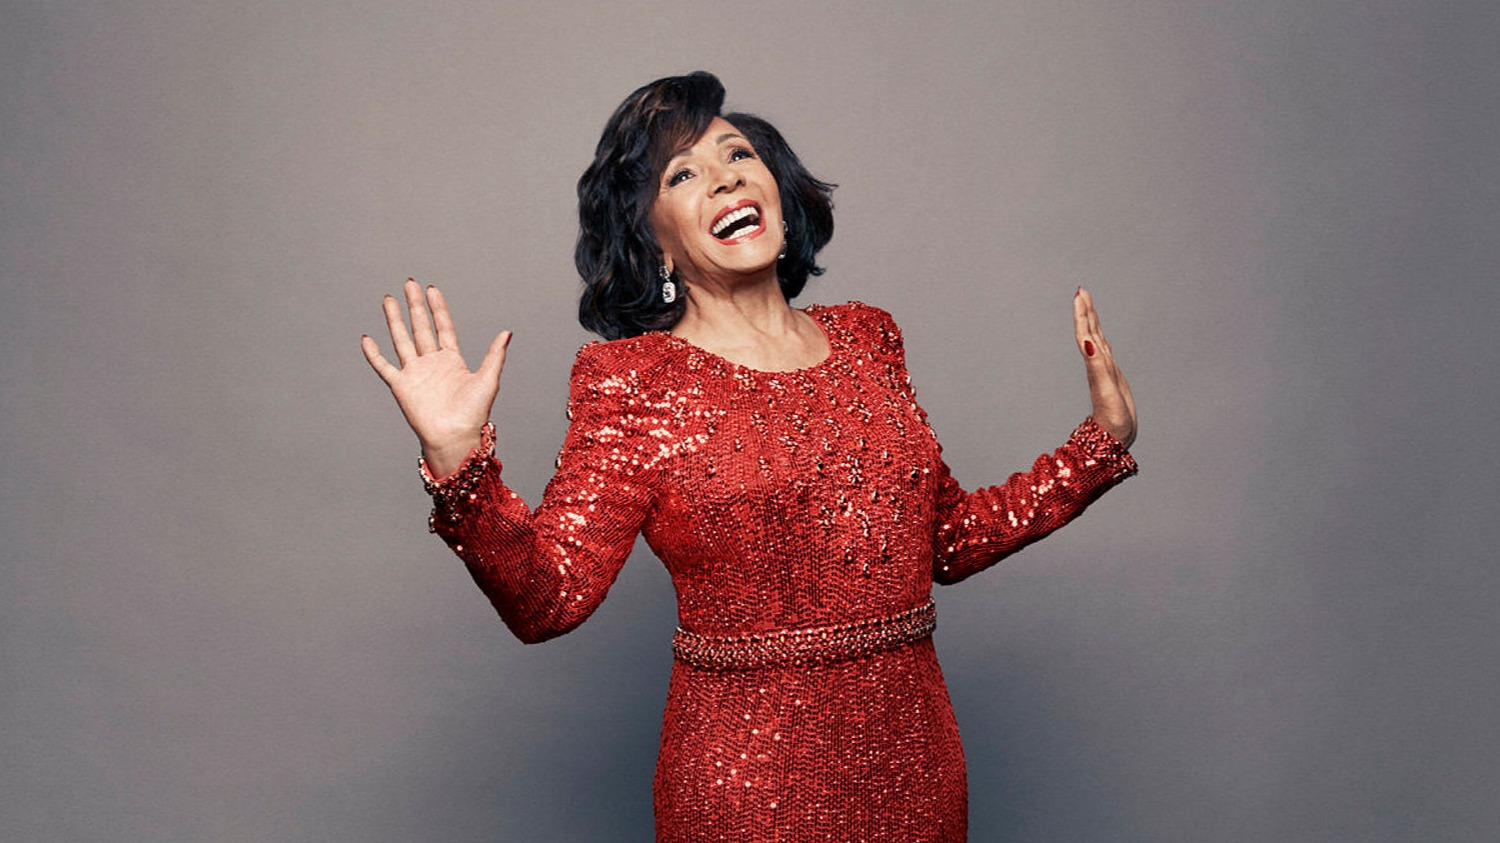 Shirley Bassey's I Owe It All to You — a lavish lowering of the curtains | Financial Times